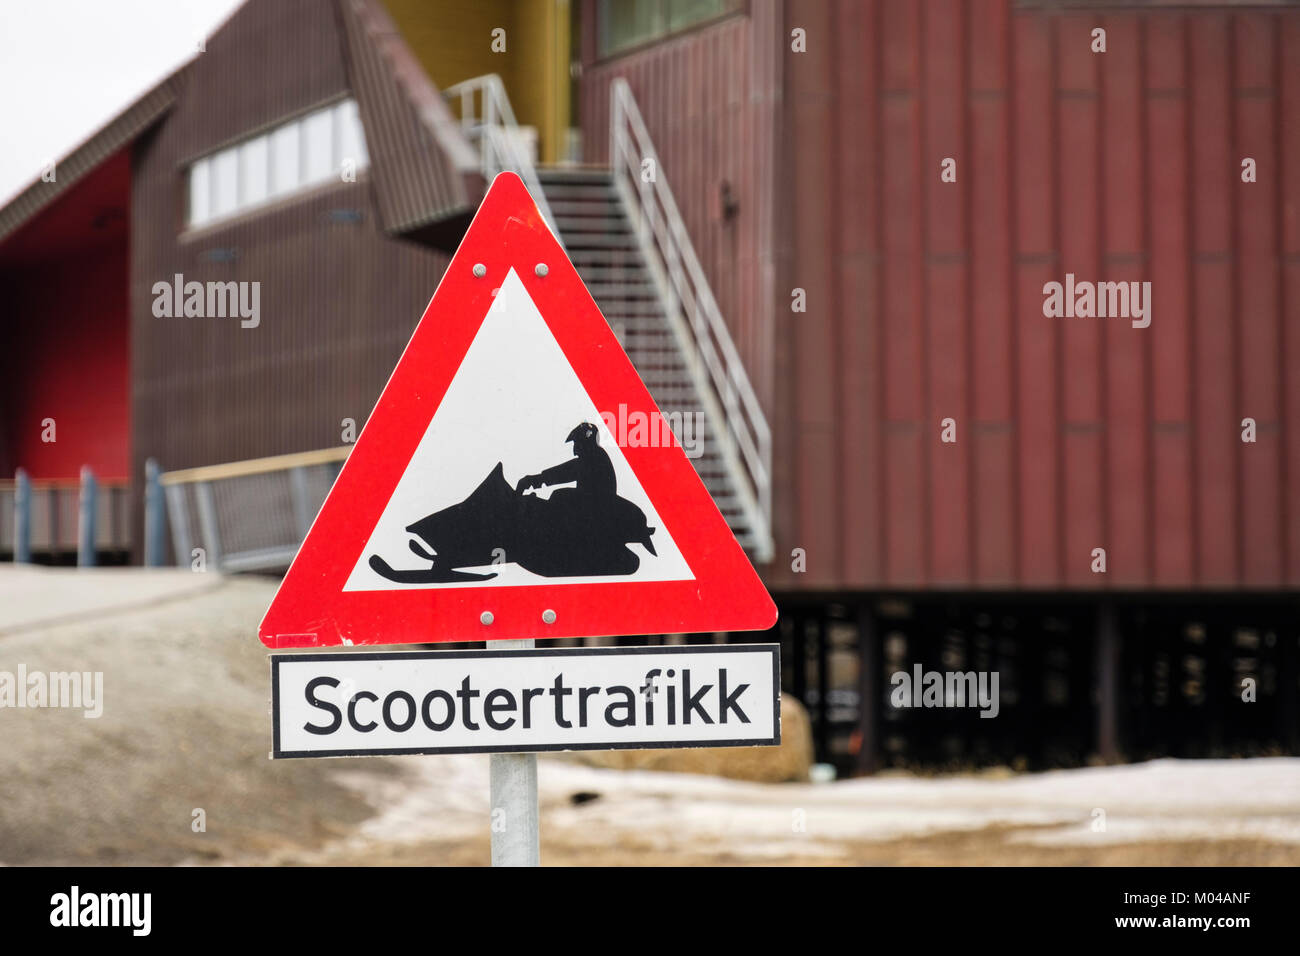 Scootertrafikk red triangle road sign warning of snowmobile scooters. Longyearbyen, Spitsbergen Island, Svalbard, - Stock Image